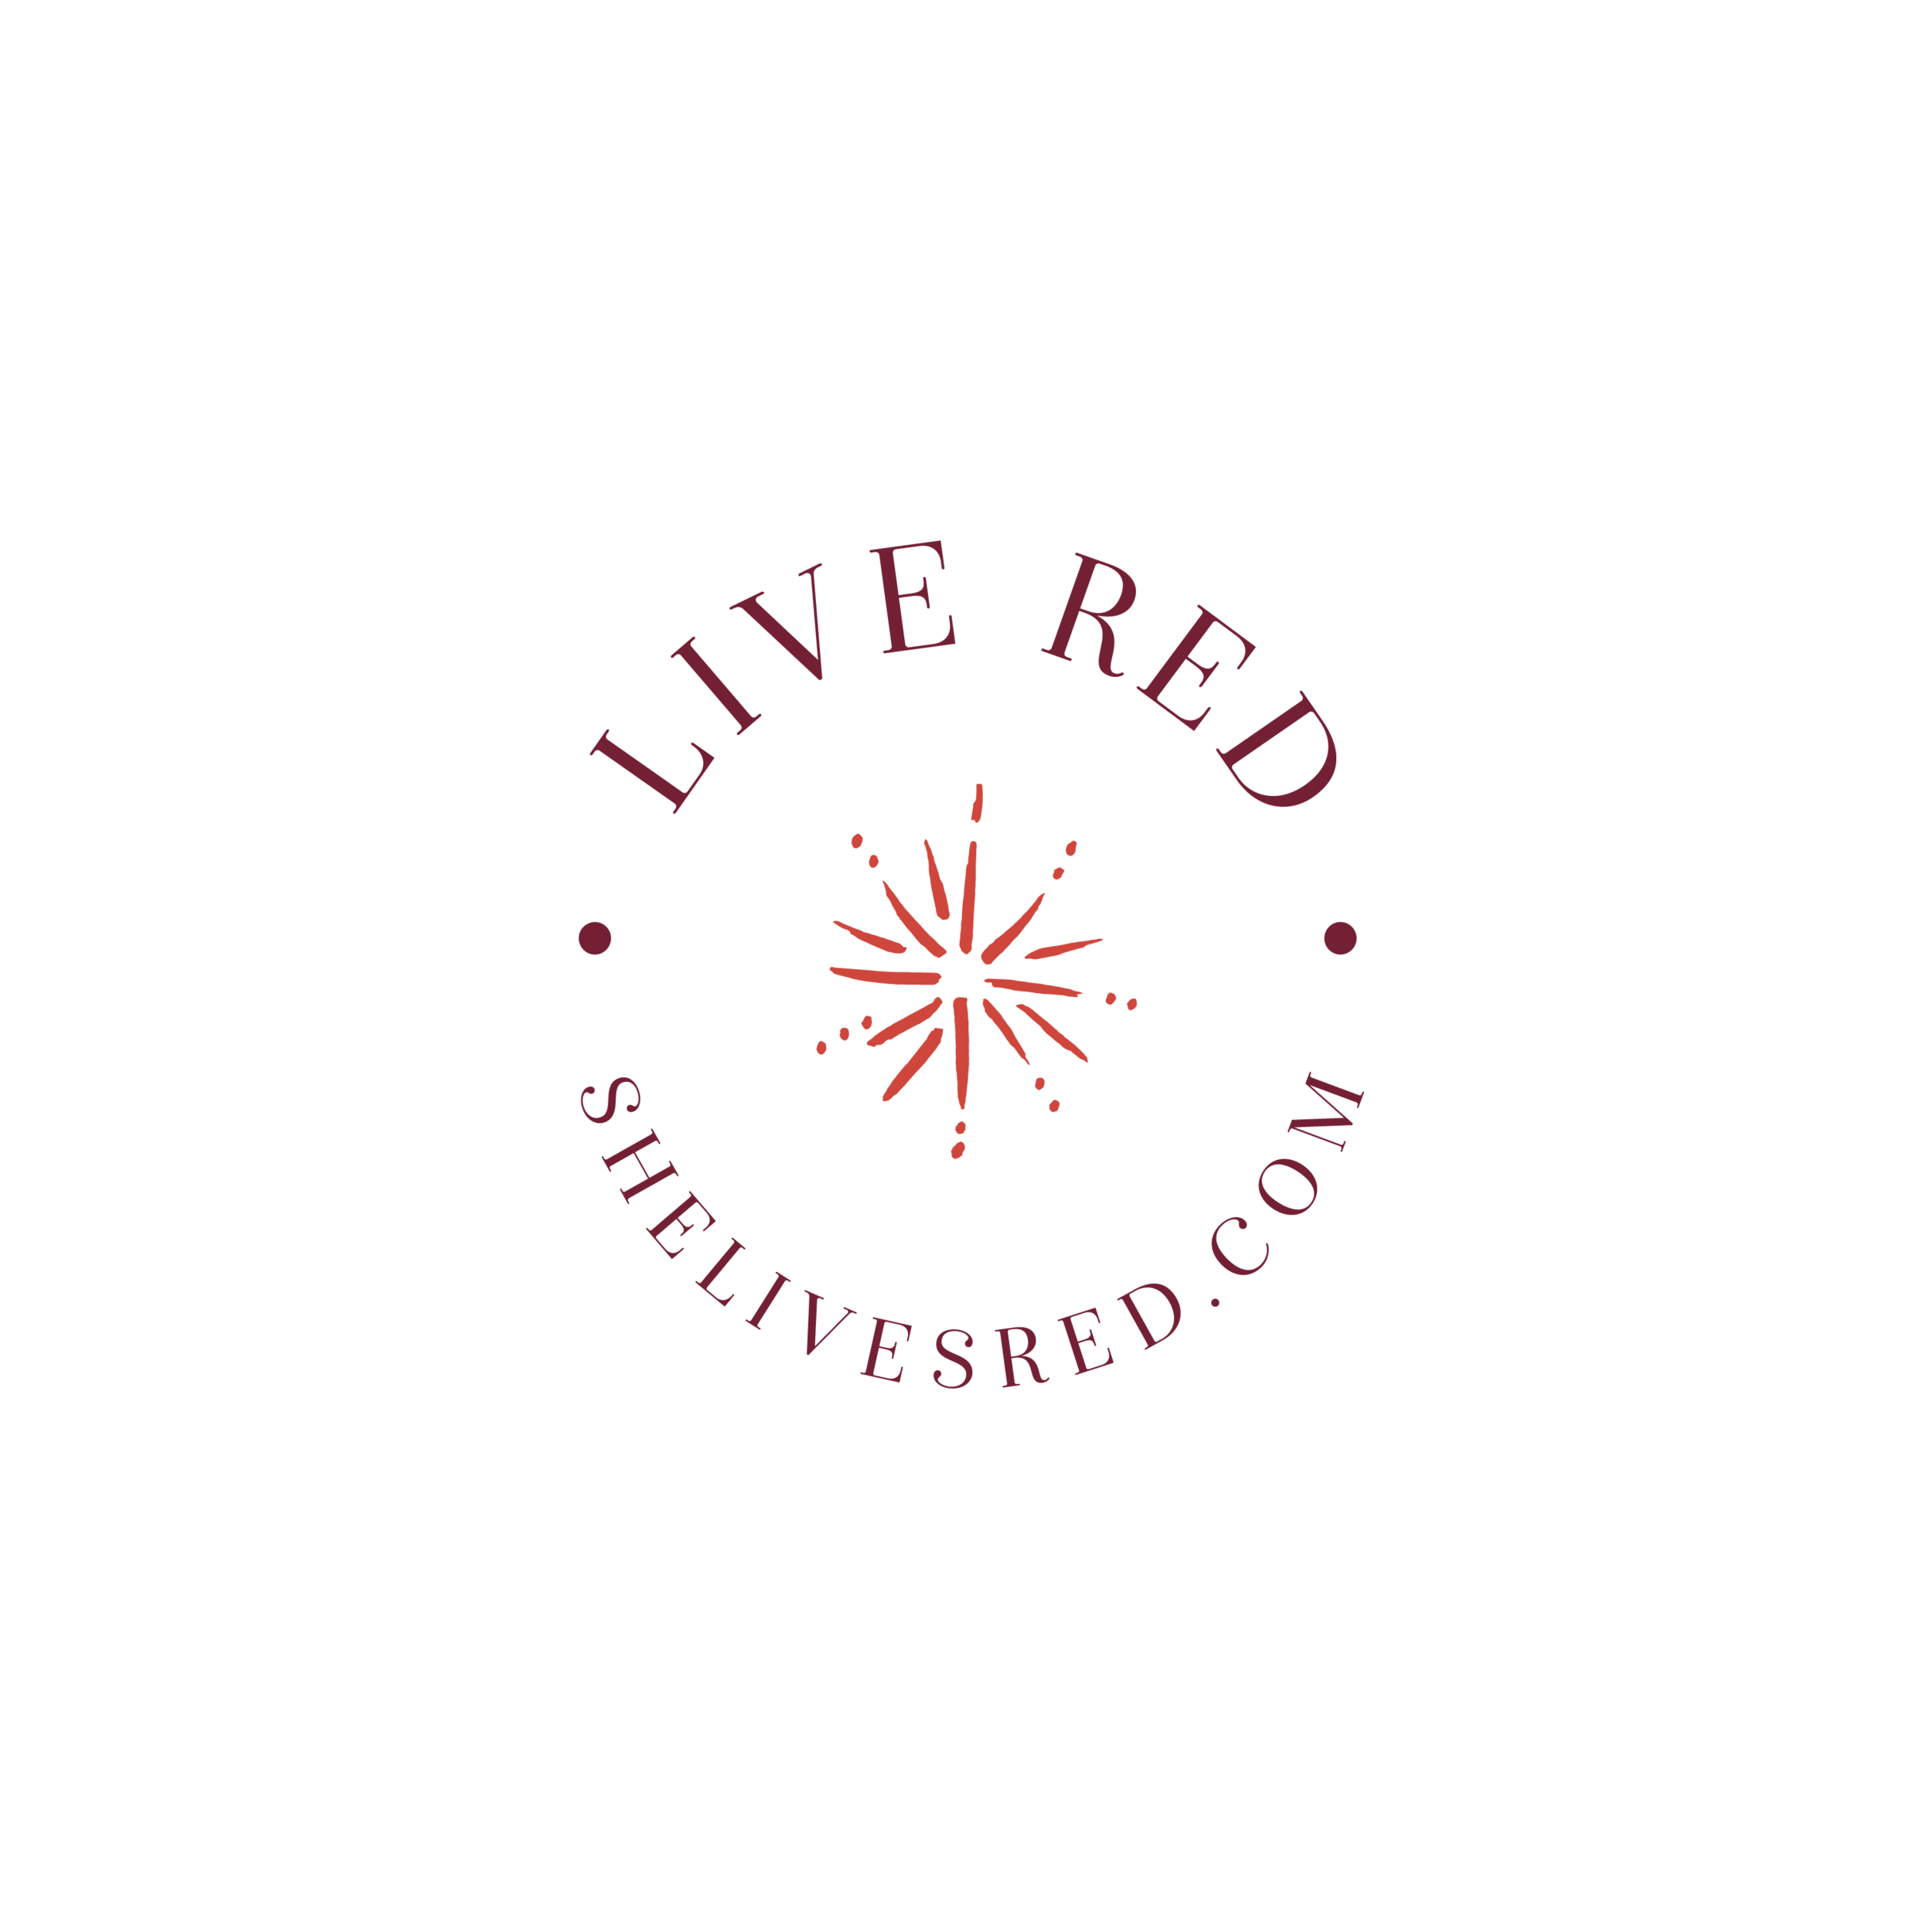 Live Red life coaching for introverted and highly-sensitive women